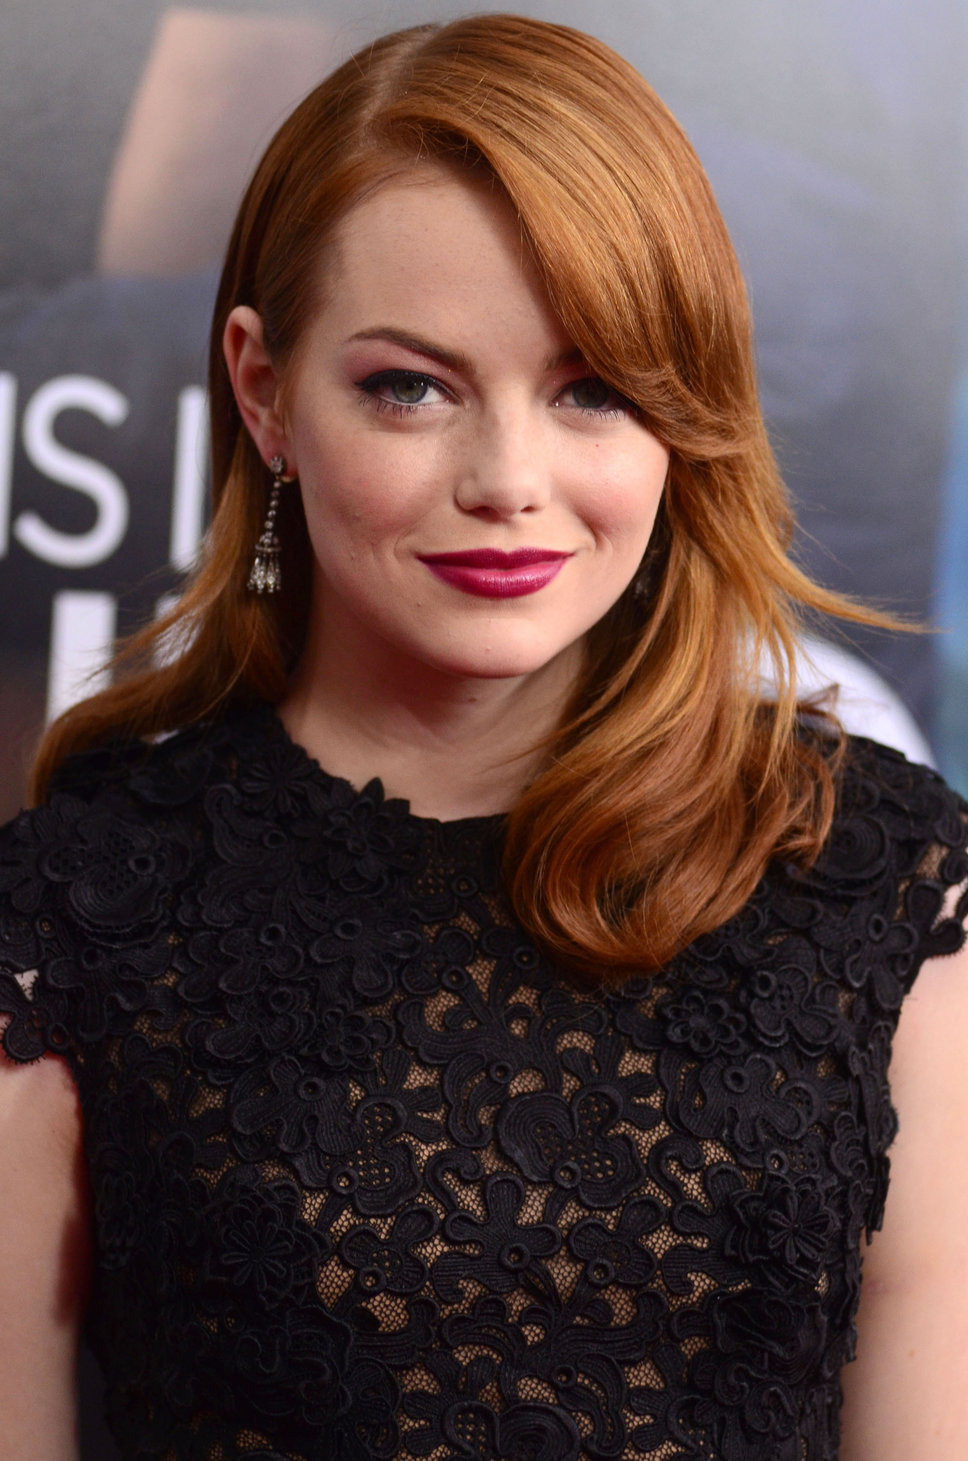 Emma Stone smokey eyes and brown hair | Makeup and Beauty ...